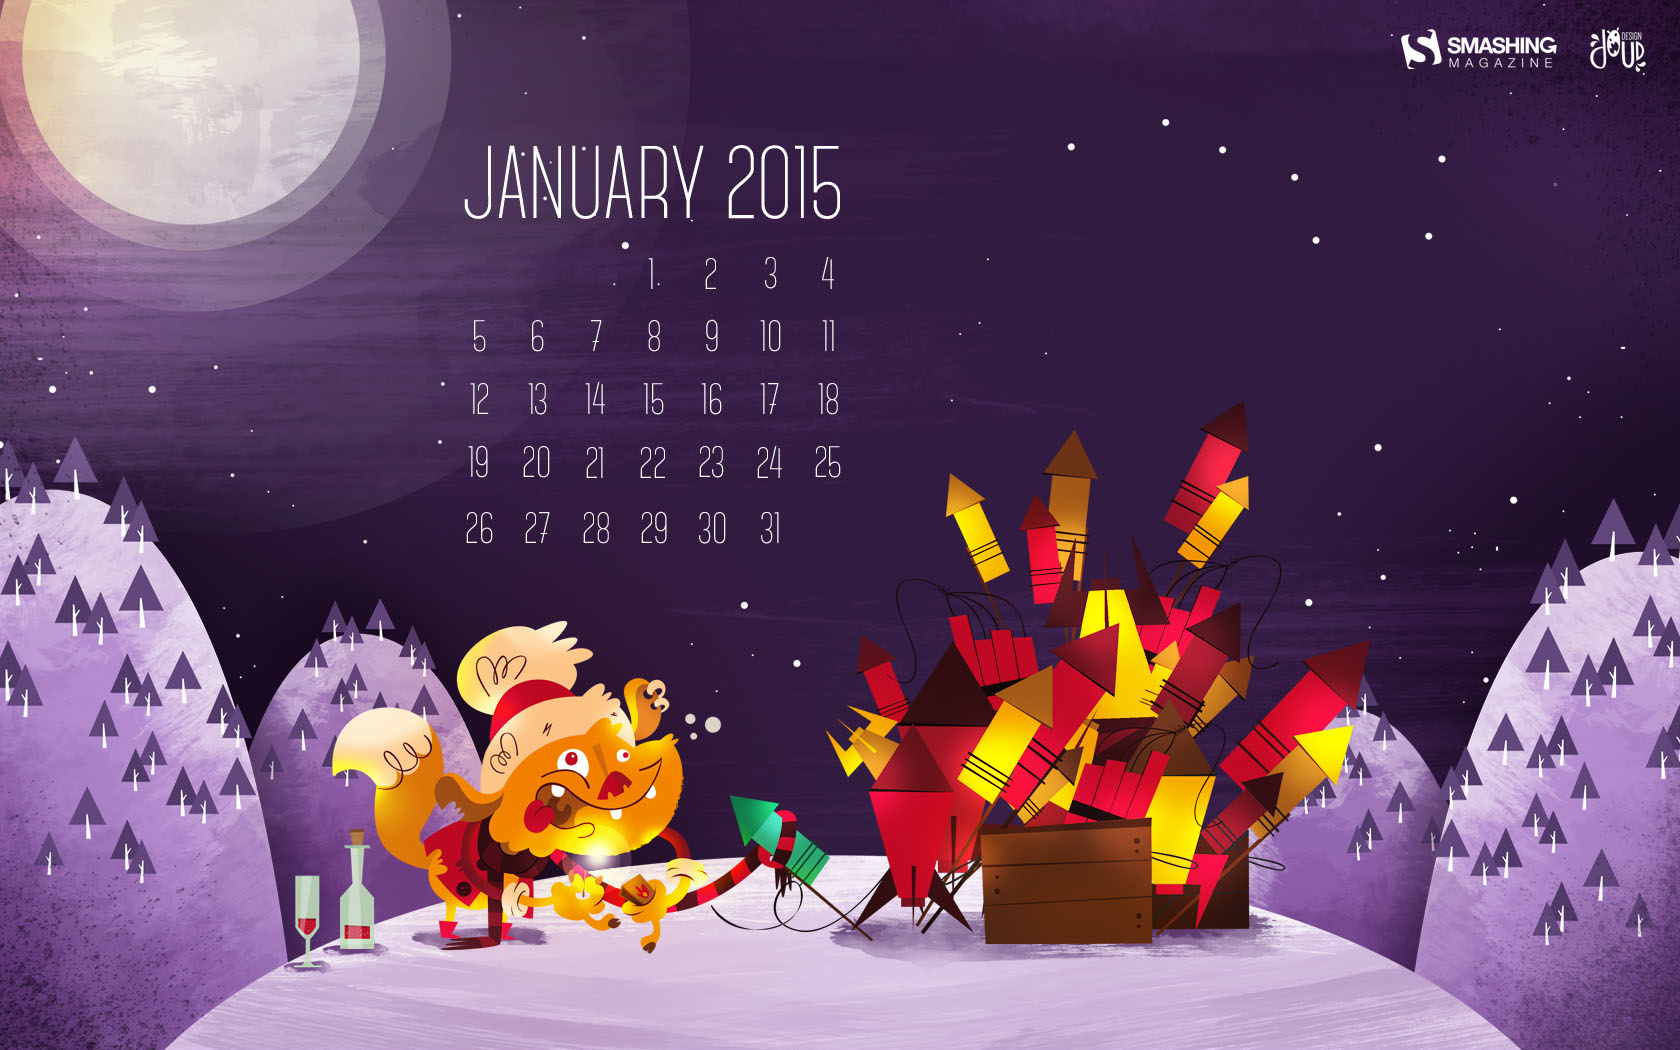 Desktop Wallpaper Calendars January 2015 Smashing Magazine 1680x1050